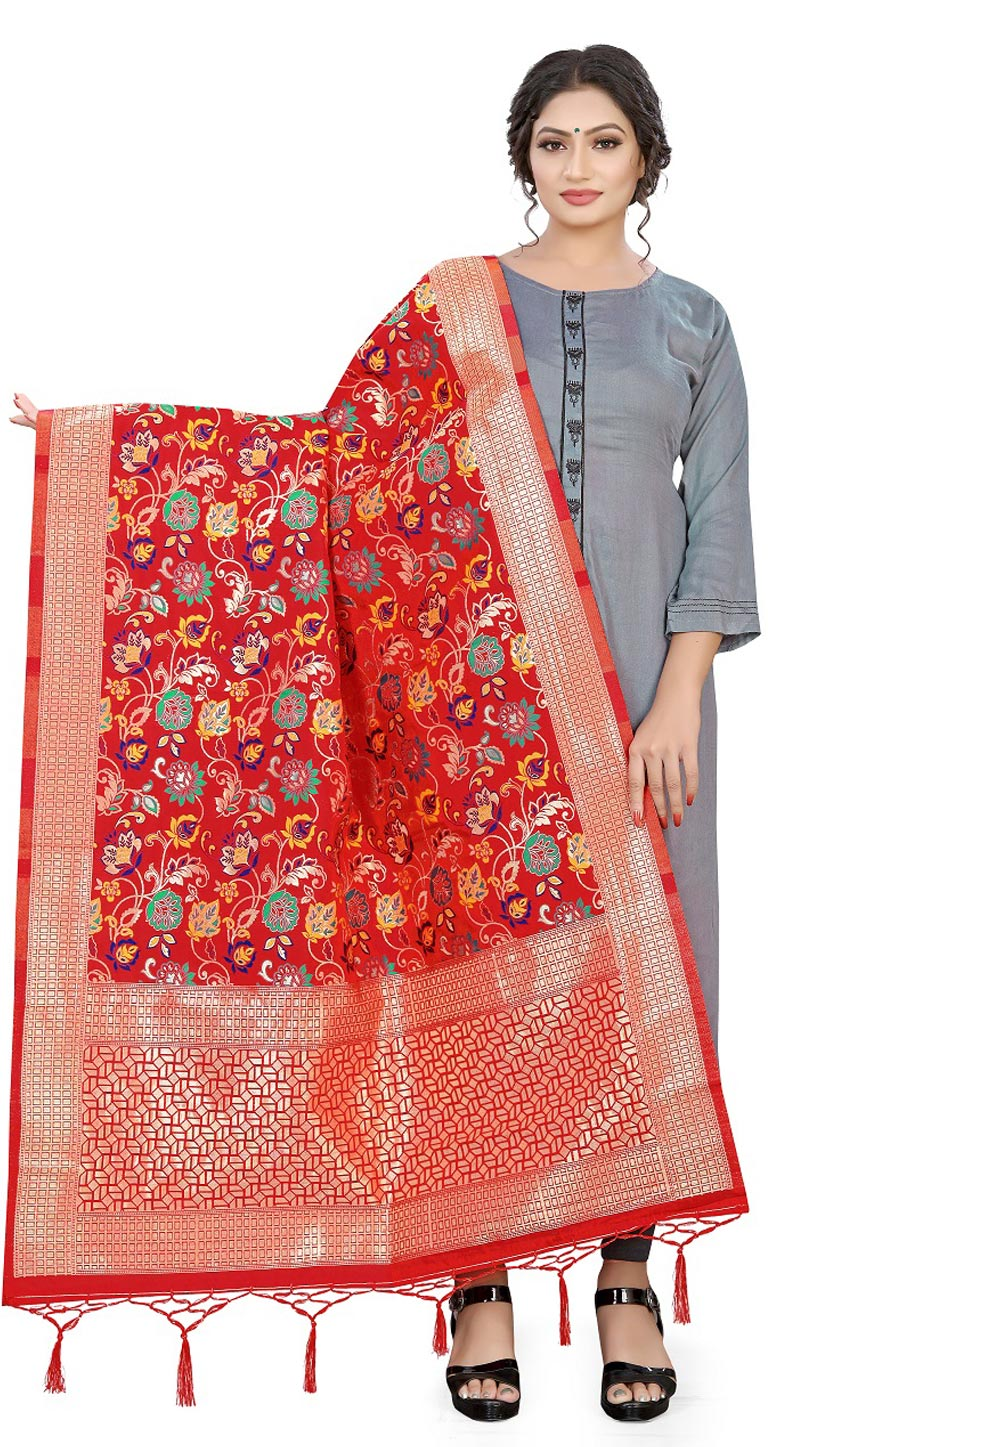 Red Banarasi Silk Dupatta 209321